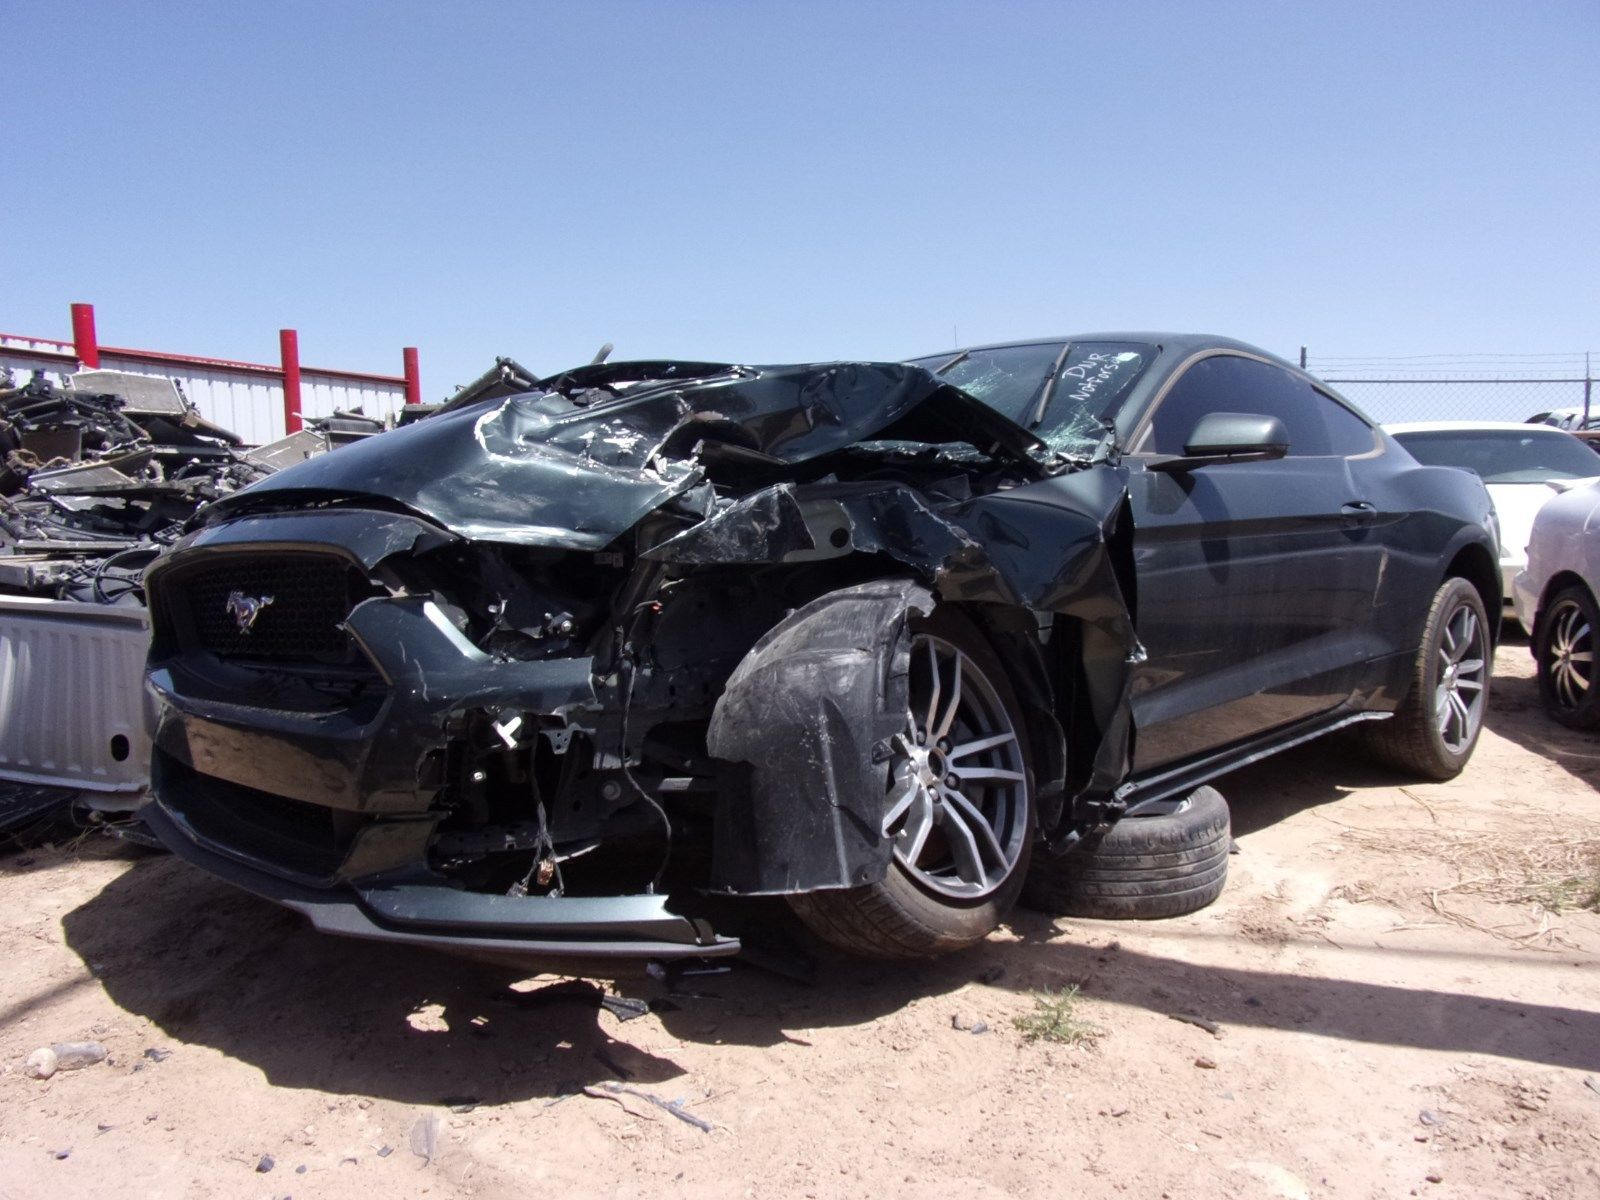 Awesome 2016 Ford Mustang Gt 5 0 Coyote Engine Complete Car Wrecked 2017 2018